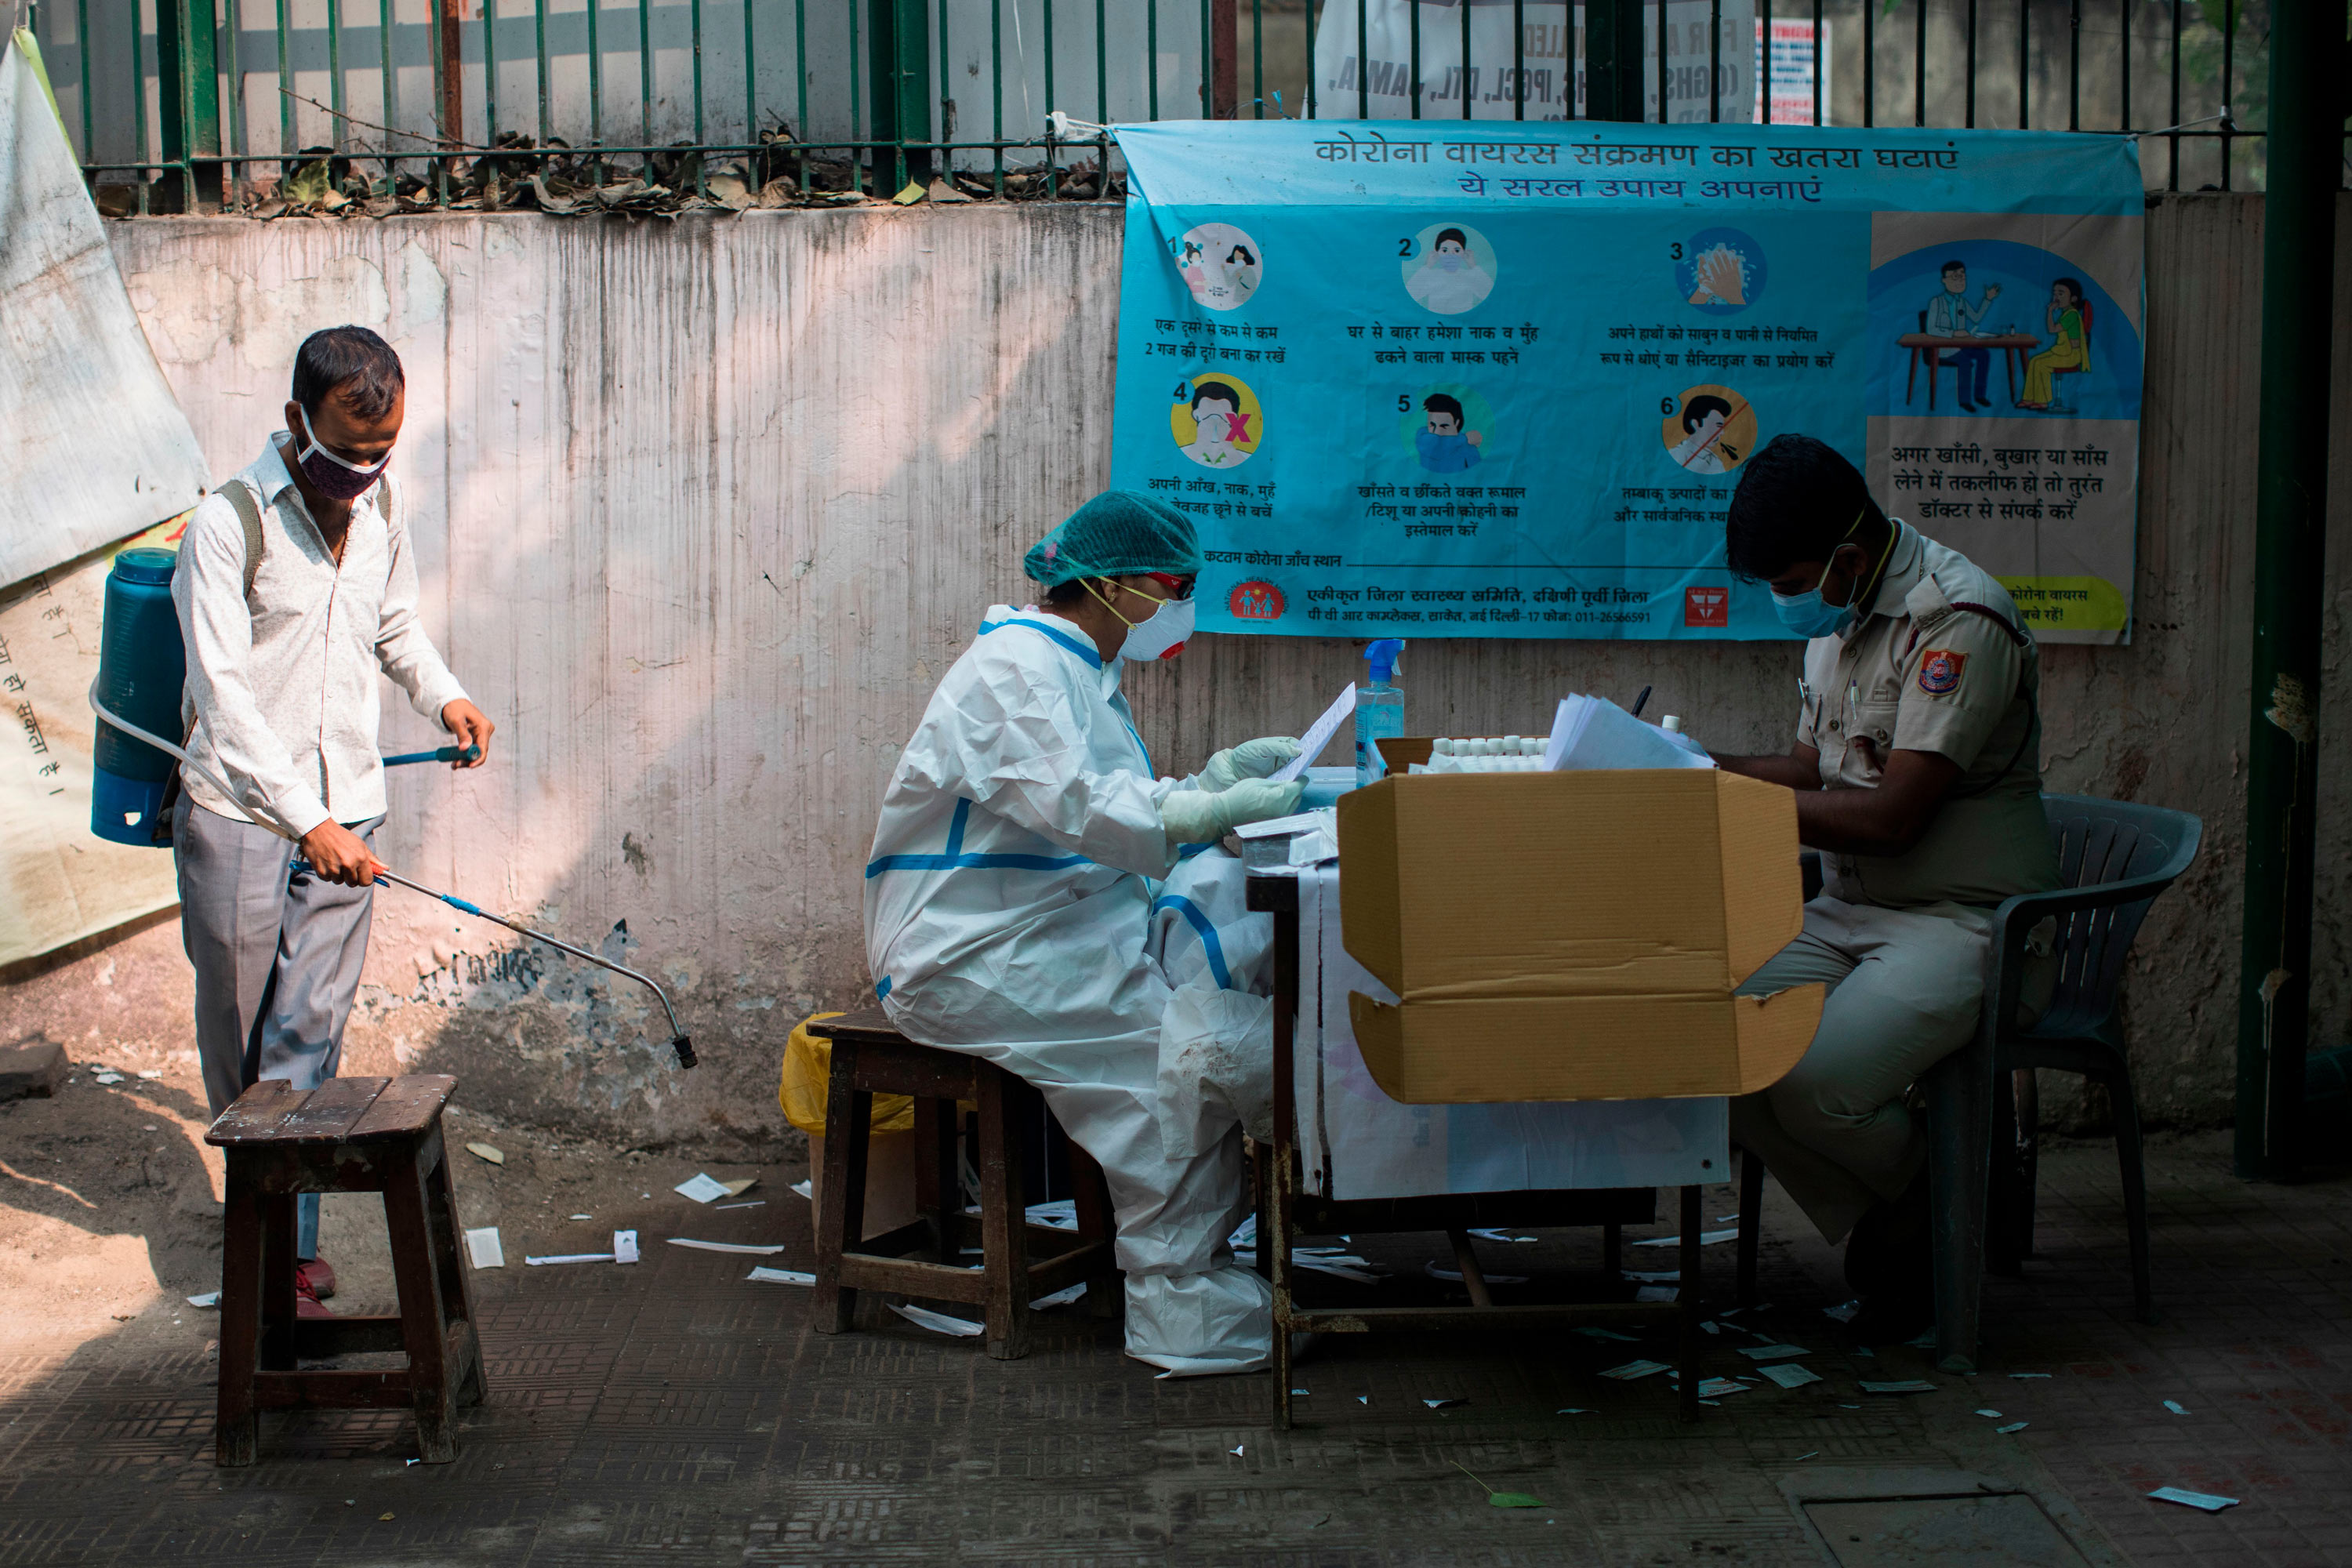 A medical worker along with a policeman sort out swab samples collected for Rapid Antigen Tests for Covid-19 at a dispensary in New Delhi on November 10.